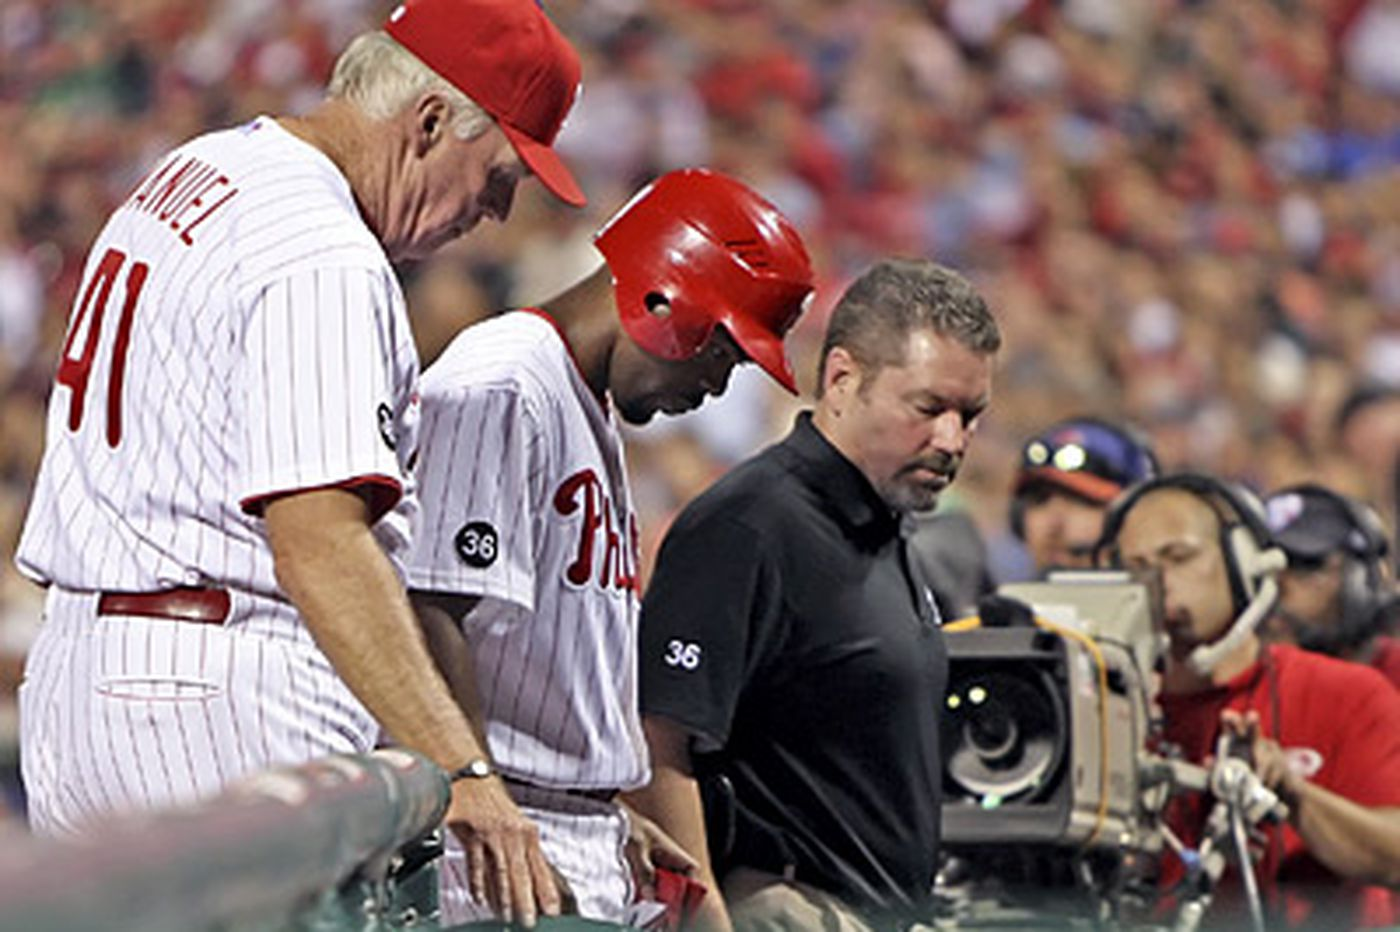 Bob Ford: Rollins' worrisome return to the disabled list